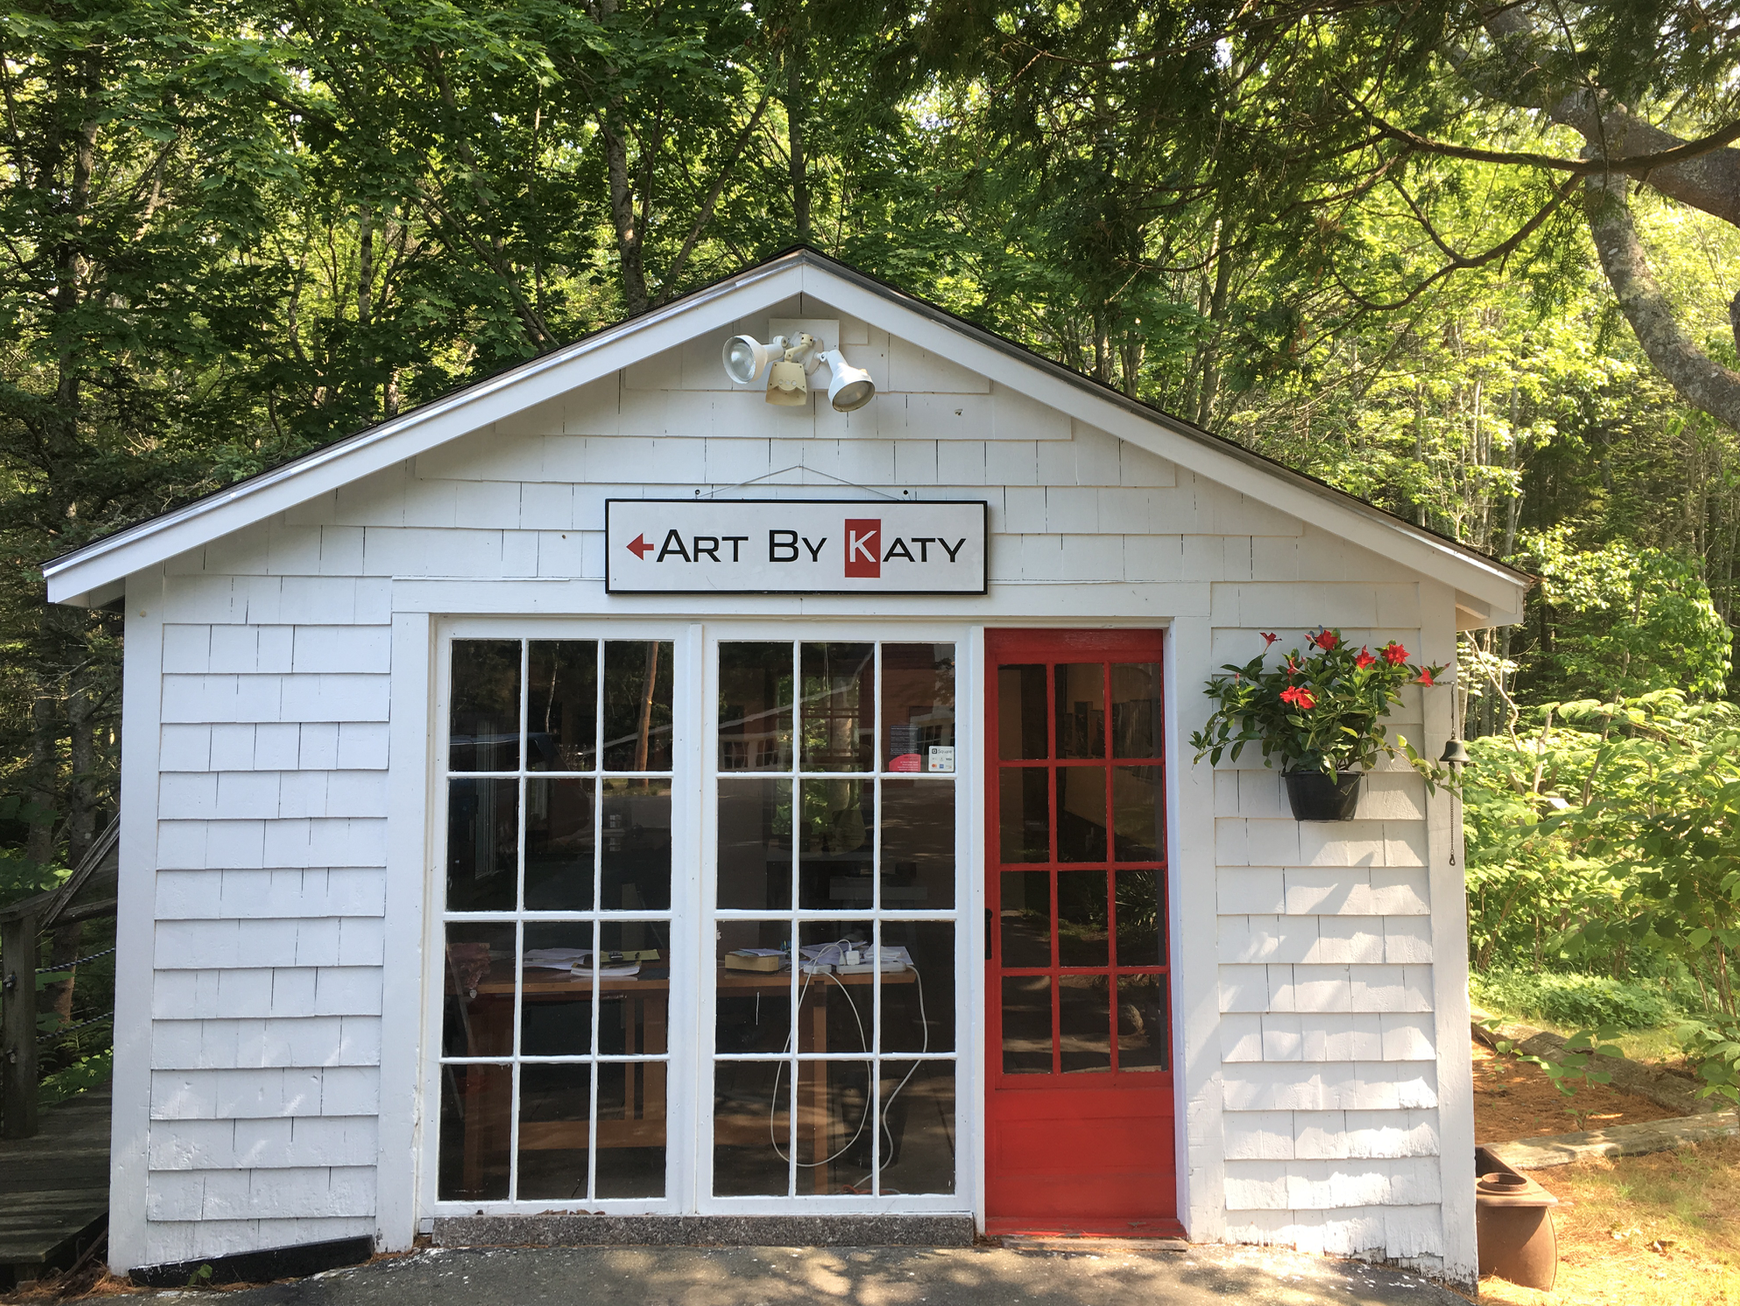 Copy of Art By Katy Gallery, 22 Weed Field Rd, Stonington, Maine